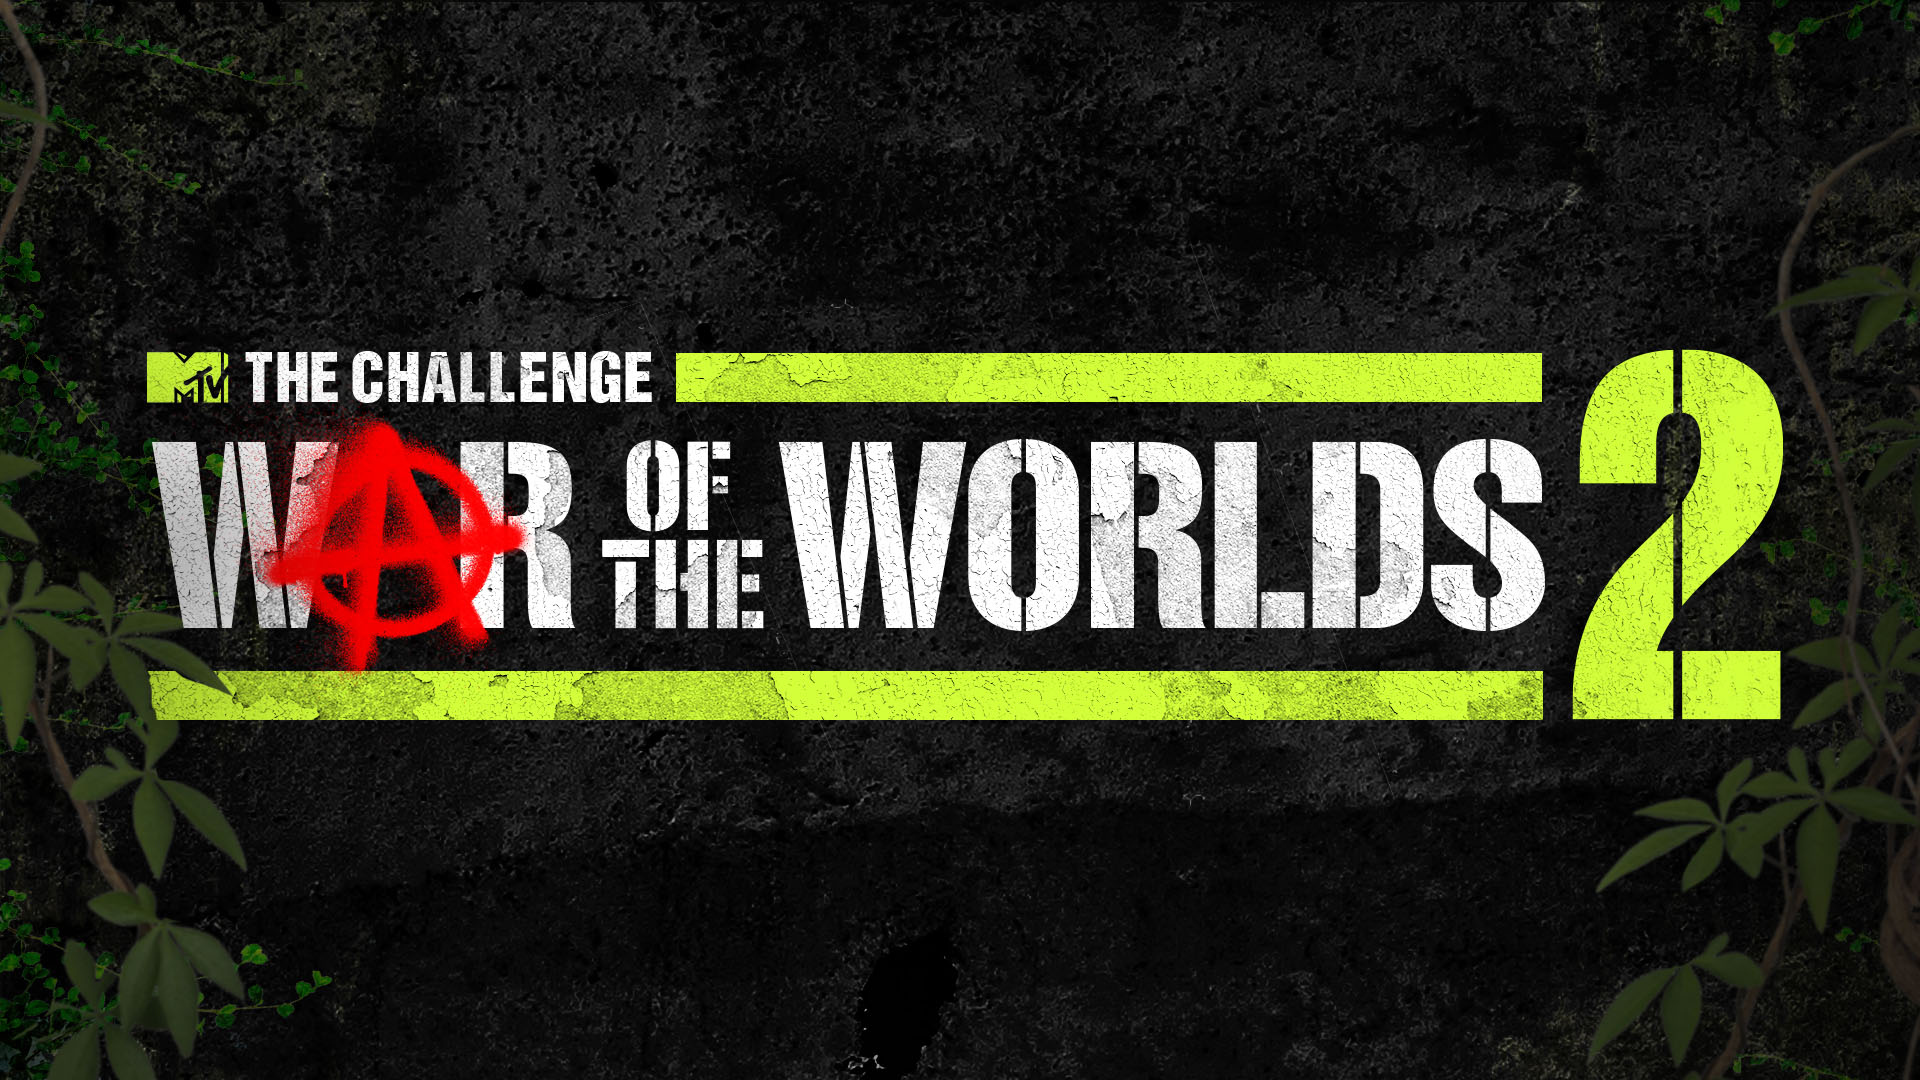 The Challenge: War of the Worlds 2 | The Challenge Wiki